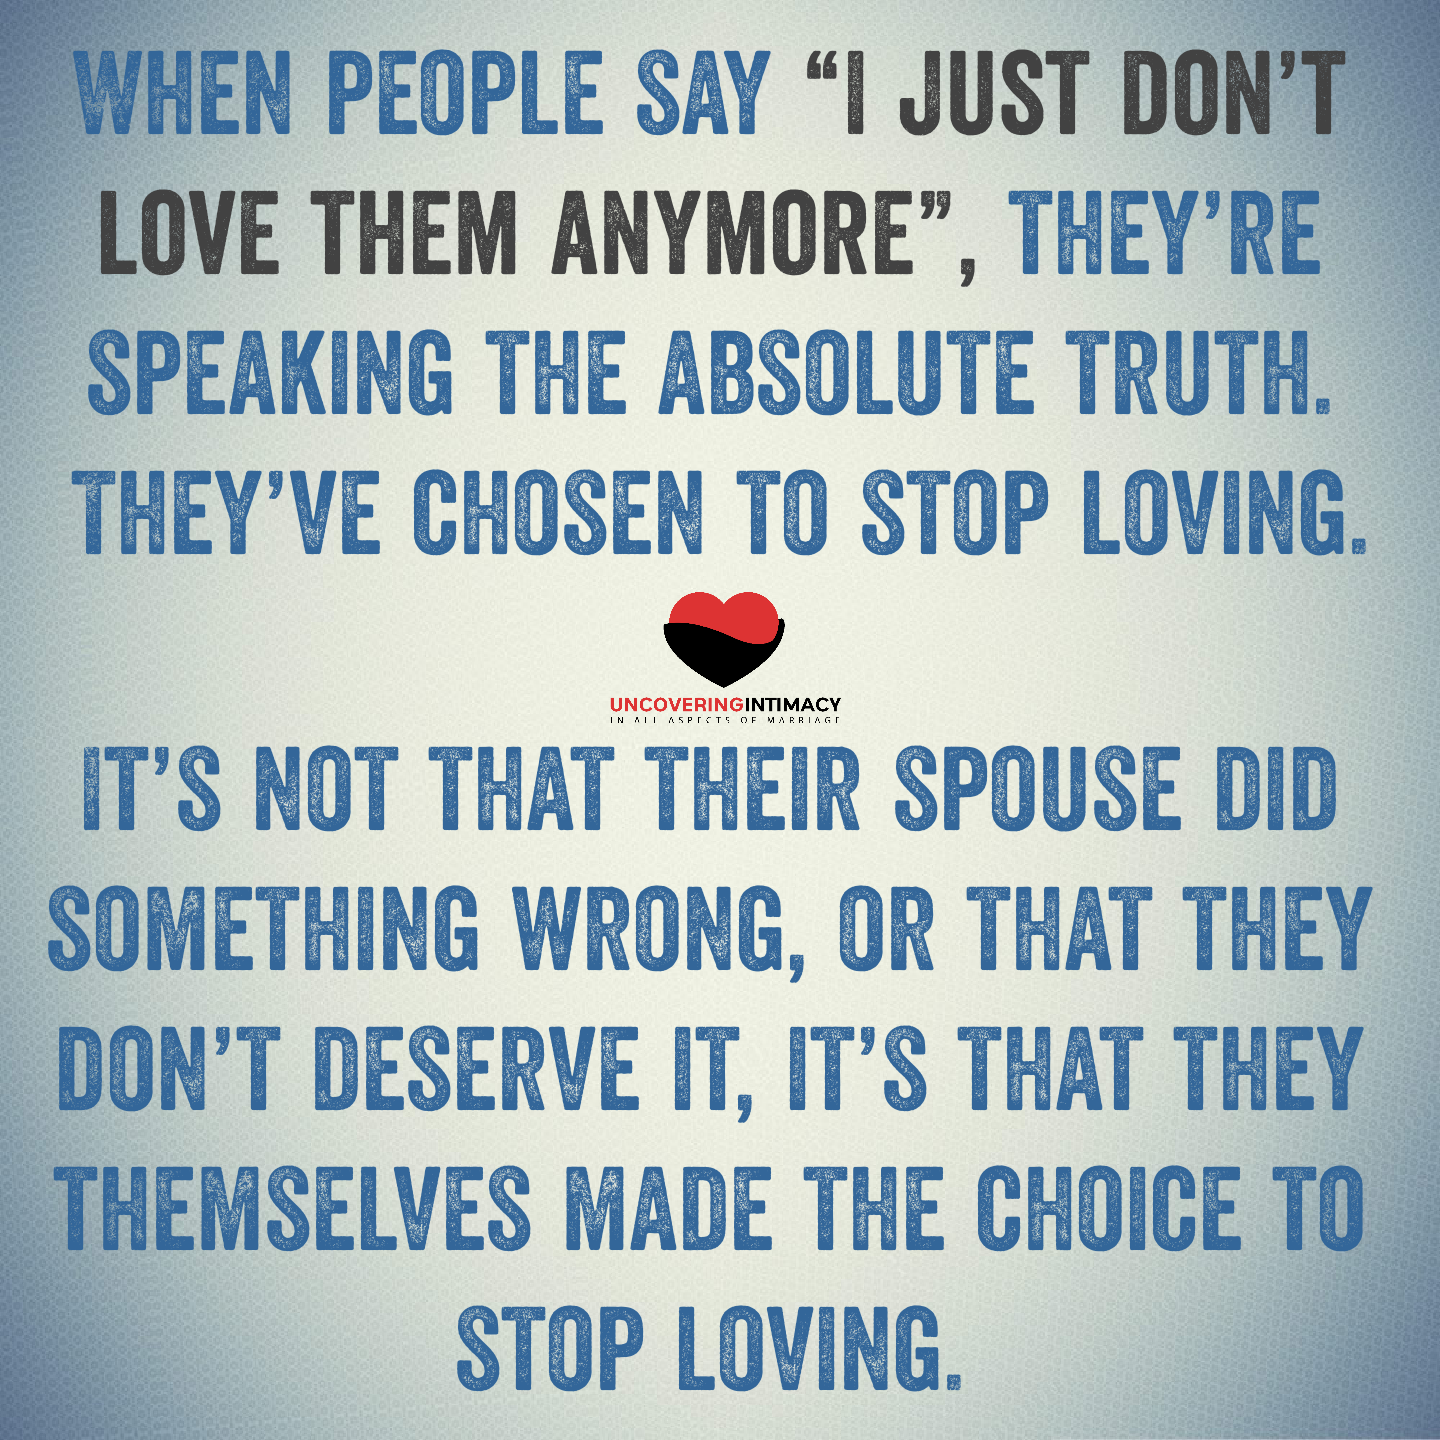 "I think when people say ""I just don't love them anymore"", they're speaking the absolute truth.  They've chosen to stop loving, and it's impossible to cherish someone you've chosen not to love.  It's not that their spouse did something wrong, or that they don't deserve it, it's that they themselves made the choice to stop loving, stop cherishing.  They've decided to distance themselves."